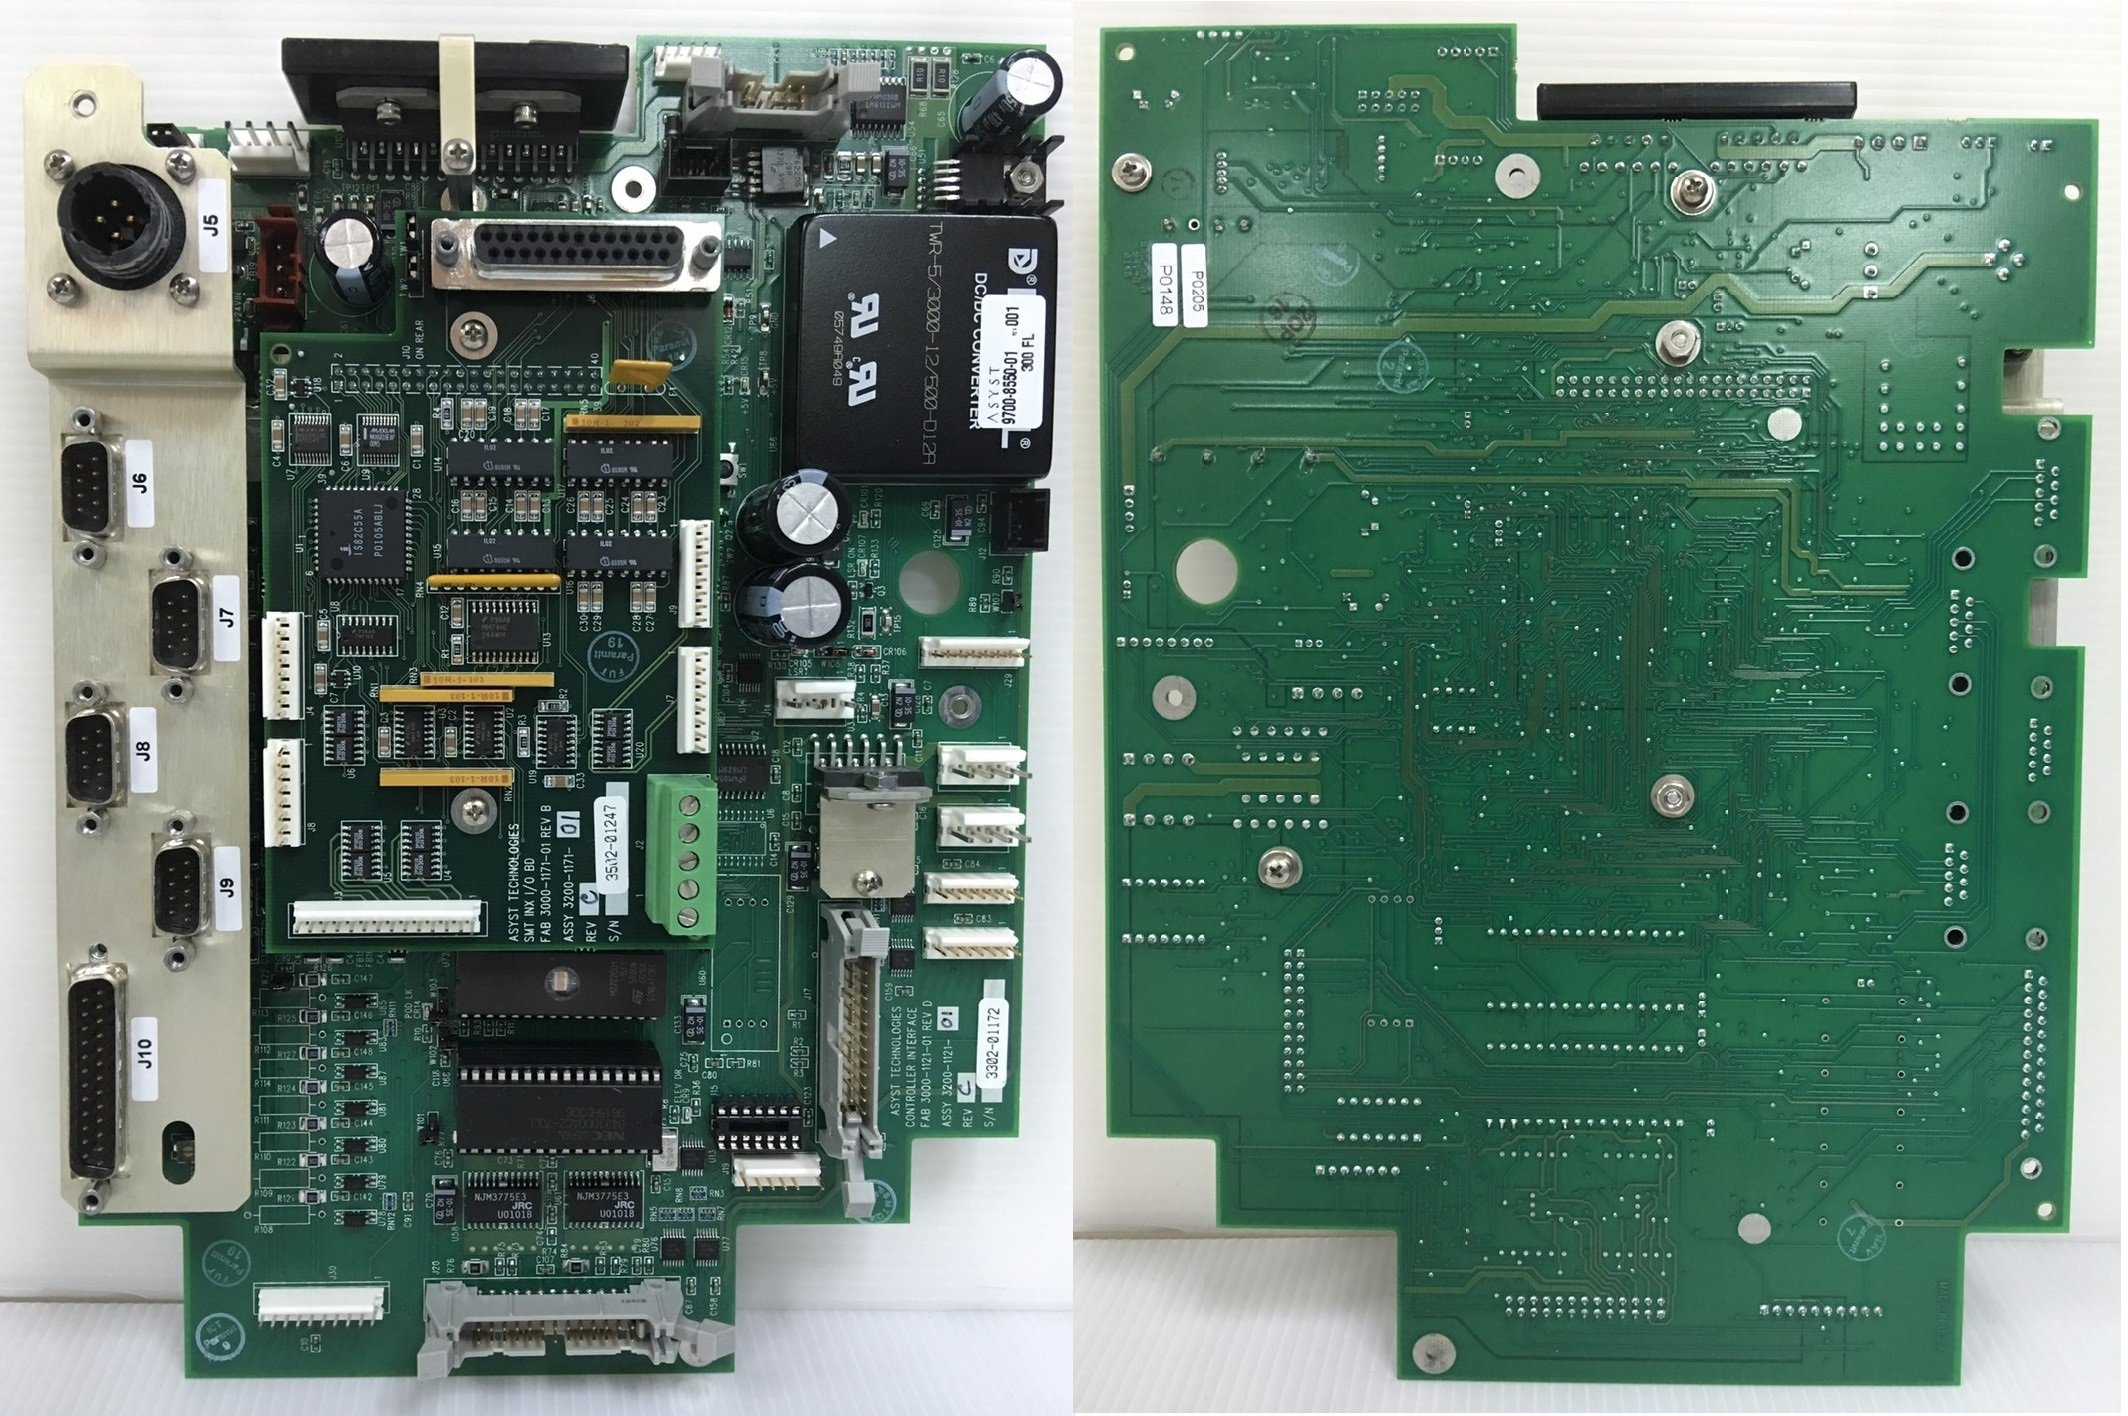 Indexer board (many type)